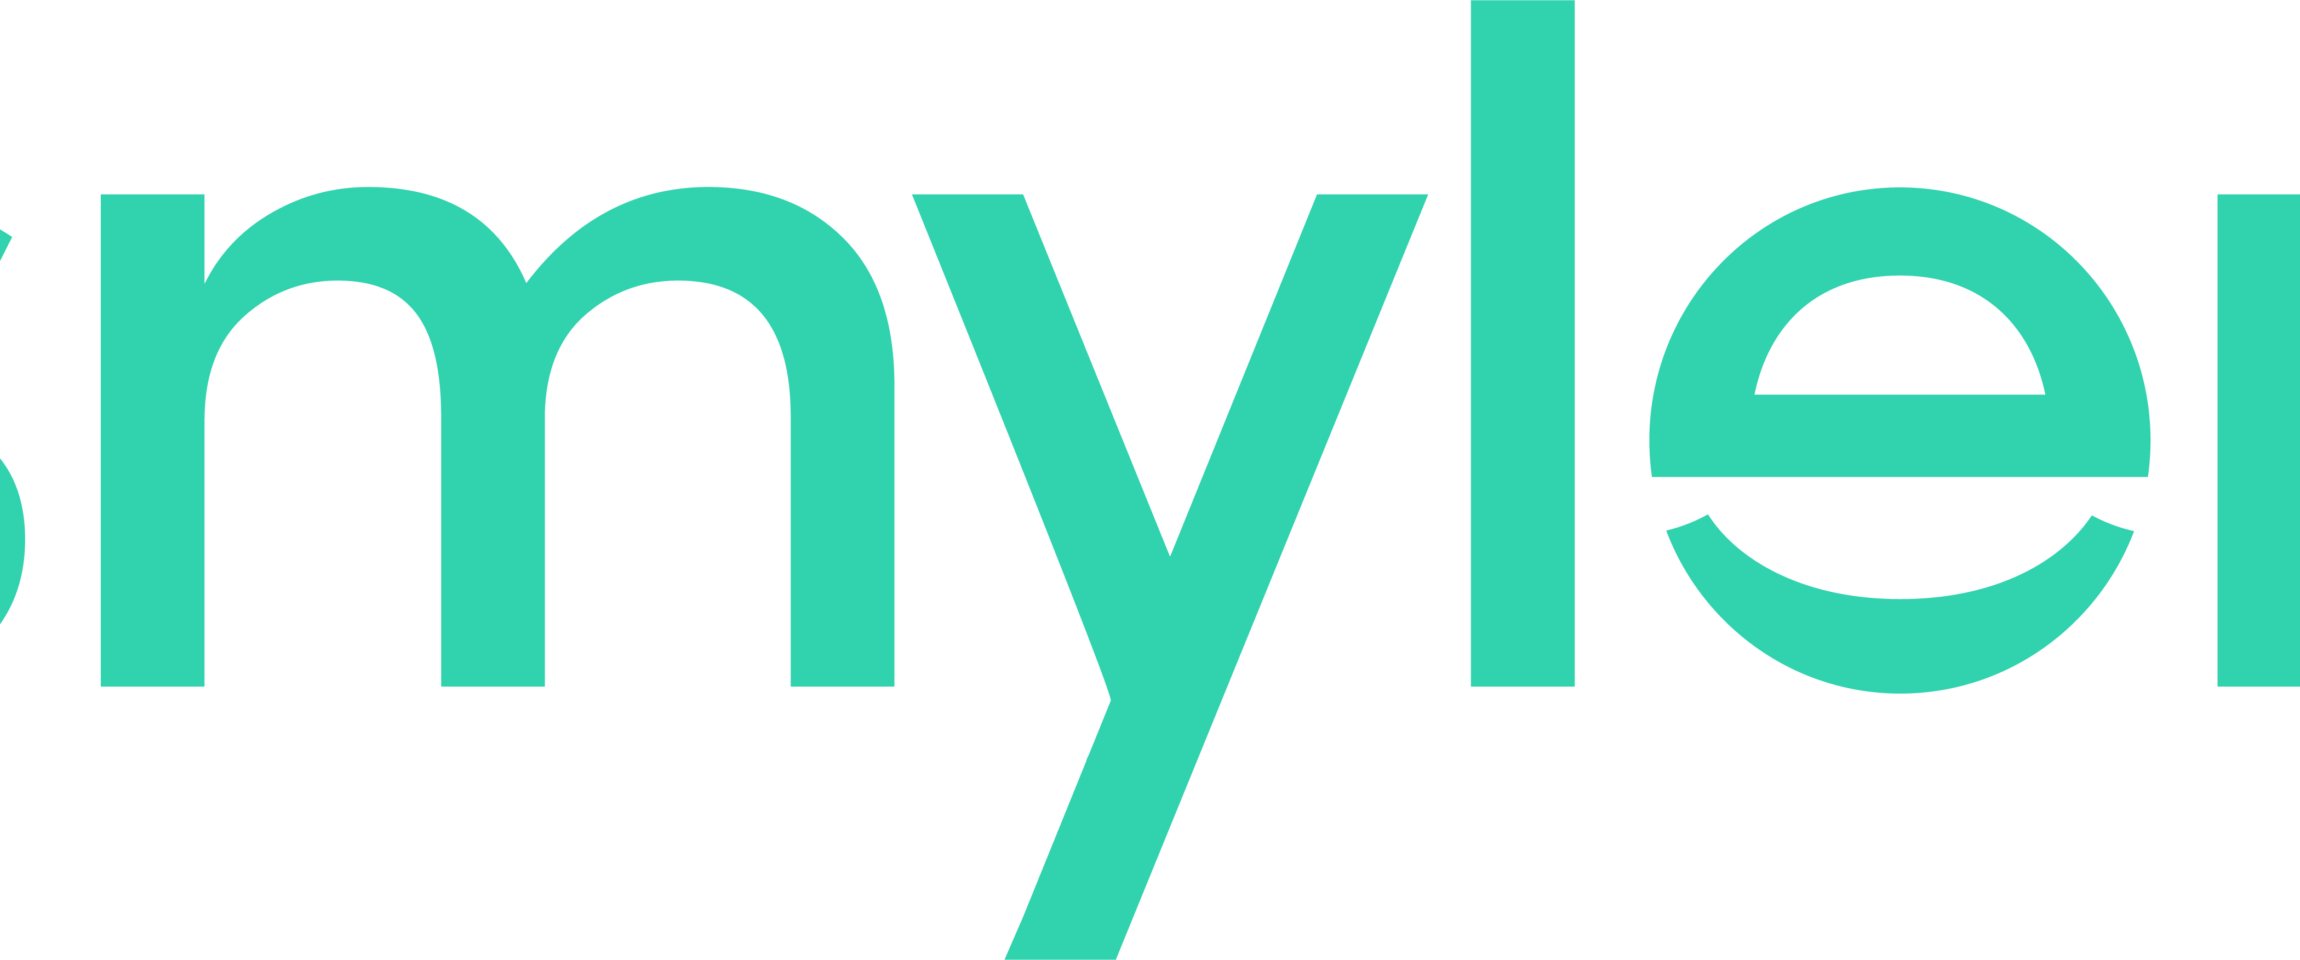 Smylen is a new kind of dental plan that combines a network of top doctors, their absolute best prices, 24/7 concierge care navigation, Airbnb-style booking, flexible payments, & personalized insurance…